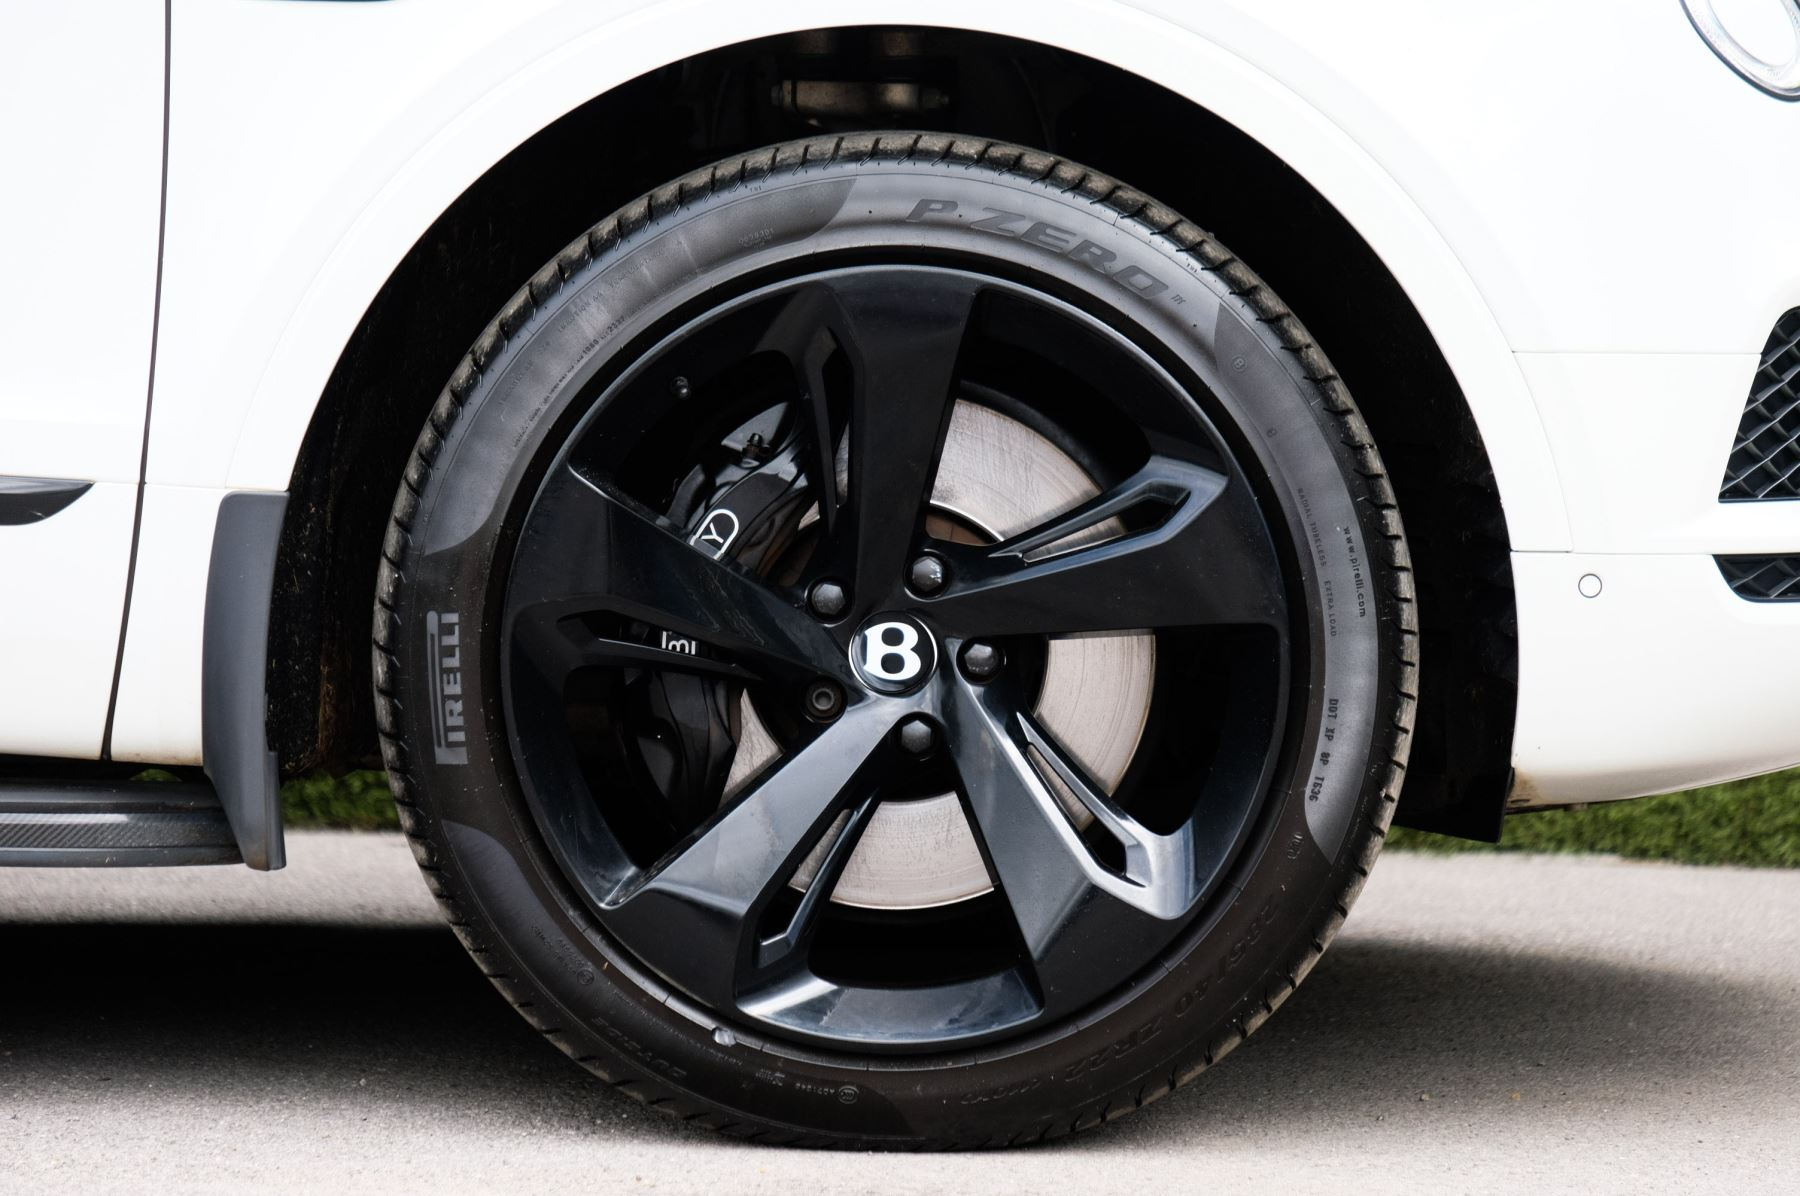 Bentley Bentayga 4.0 V8 5dr - Mulliner Driving Specification with 22 Inch Five Spoke Direction Alloys  image 8